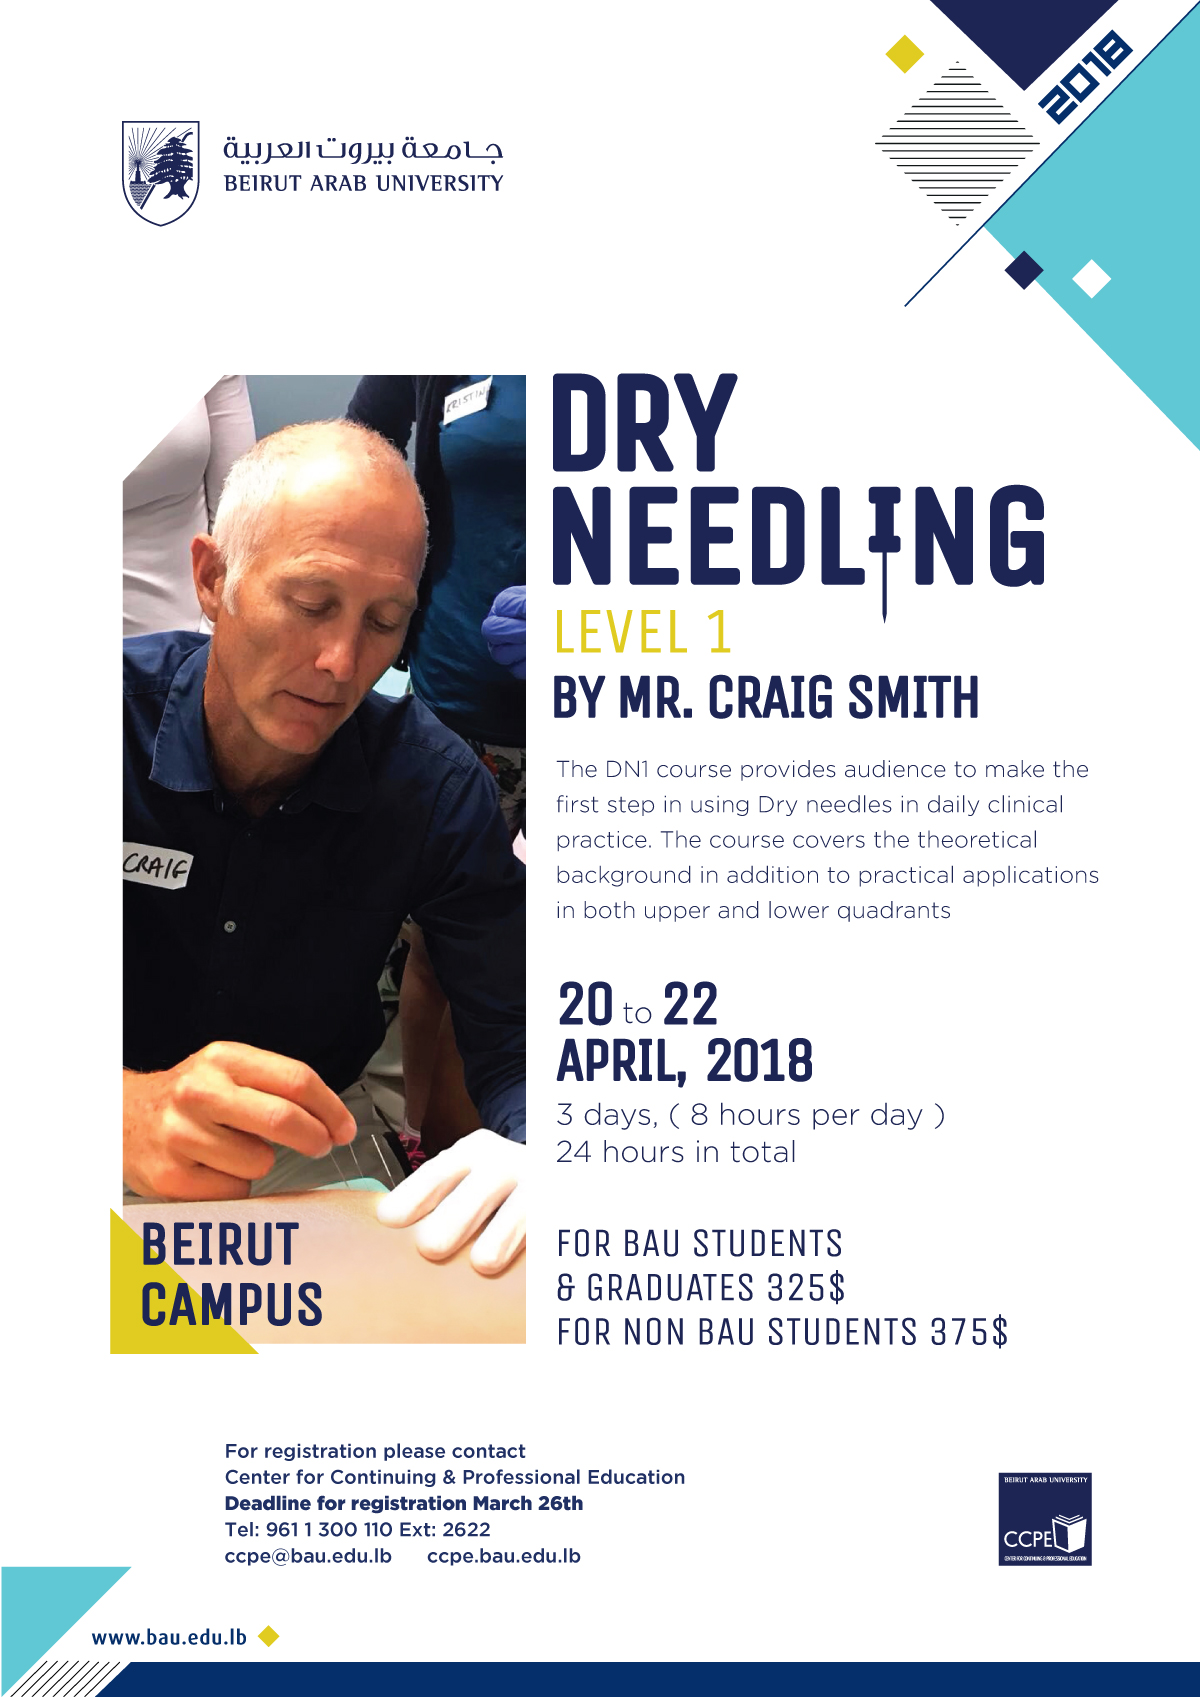 Dry Needling Level 1